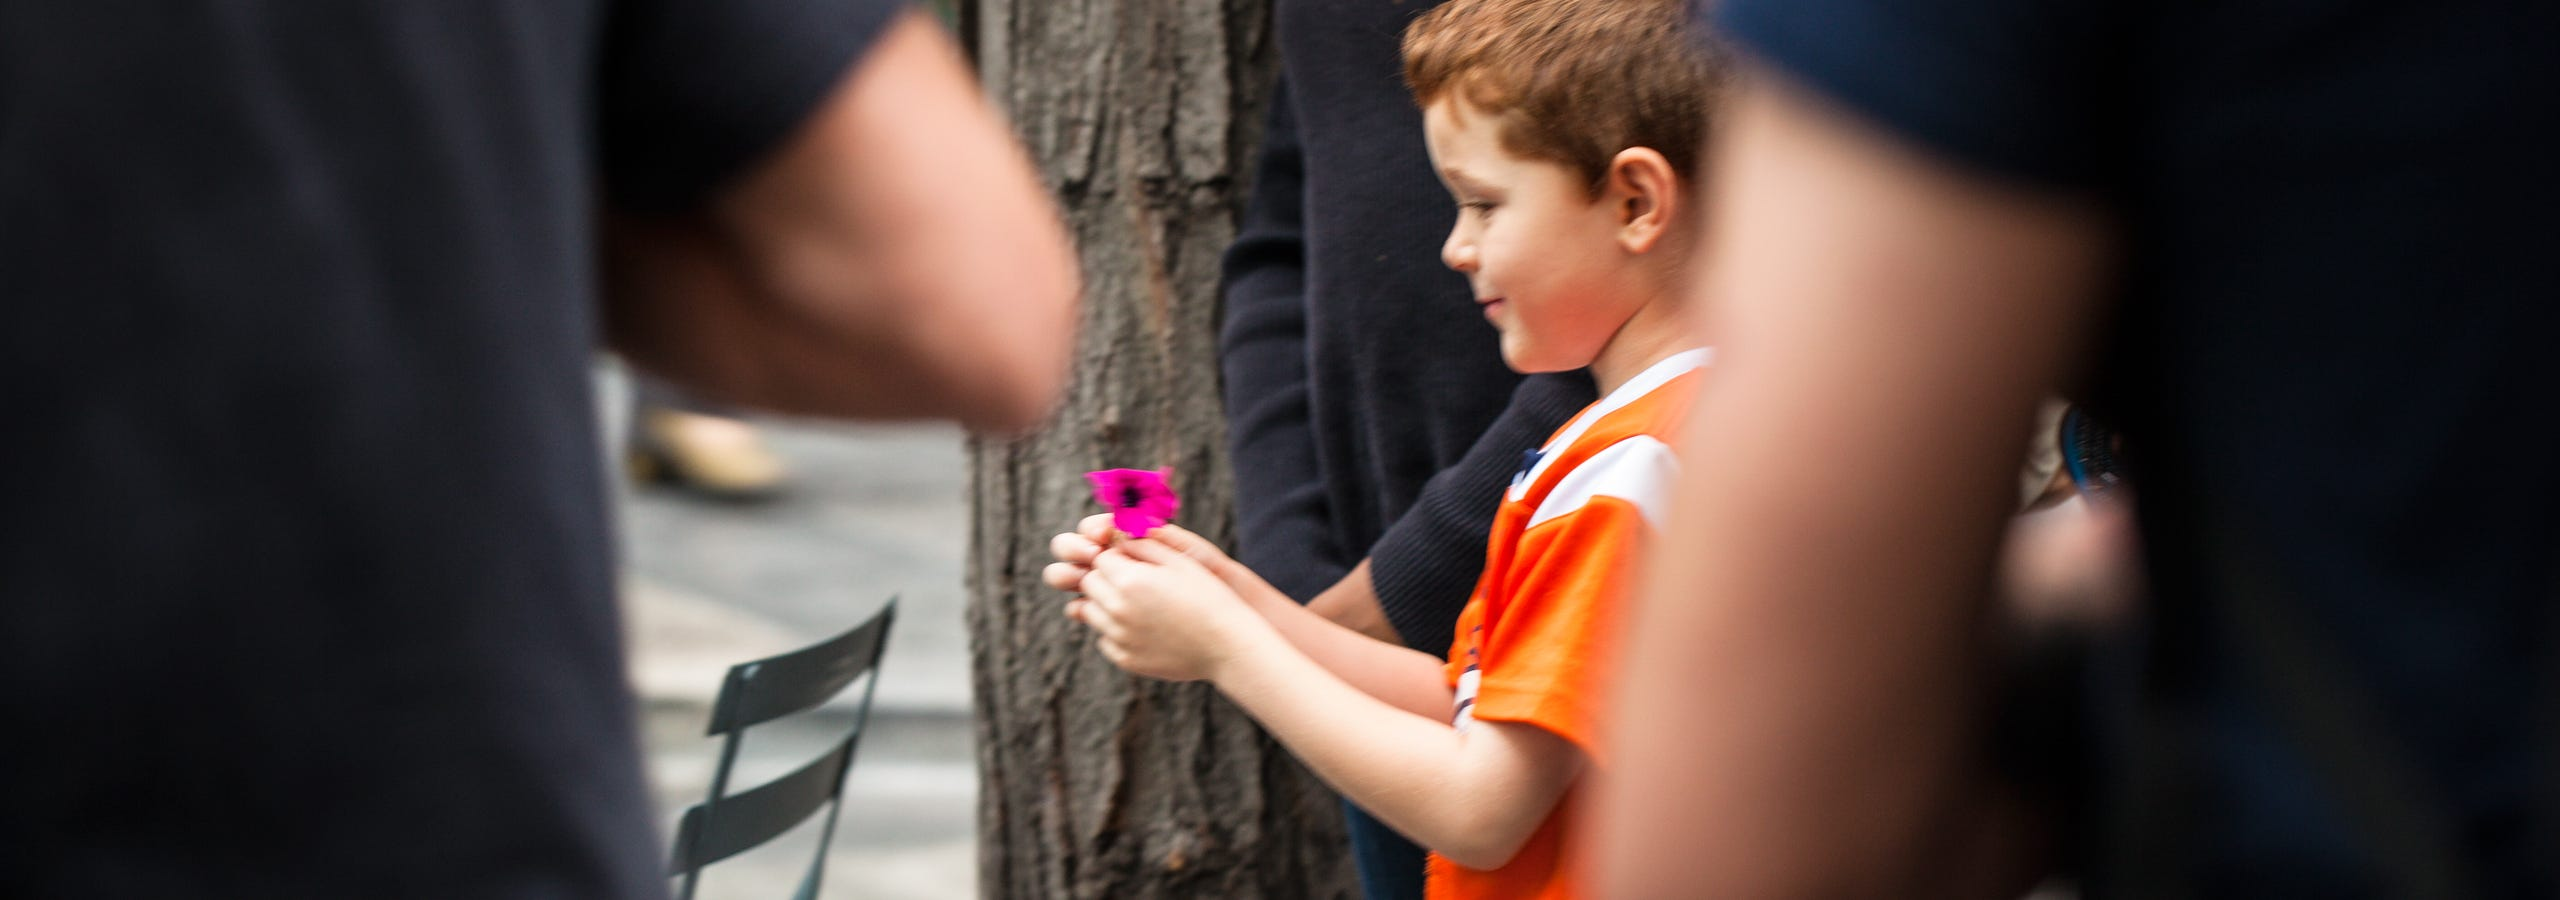 Child holding a flower and smiling